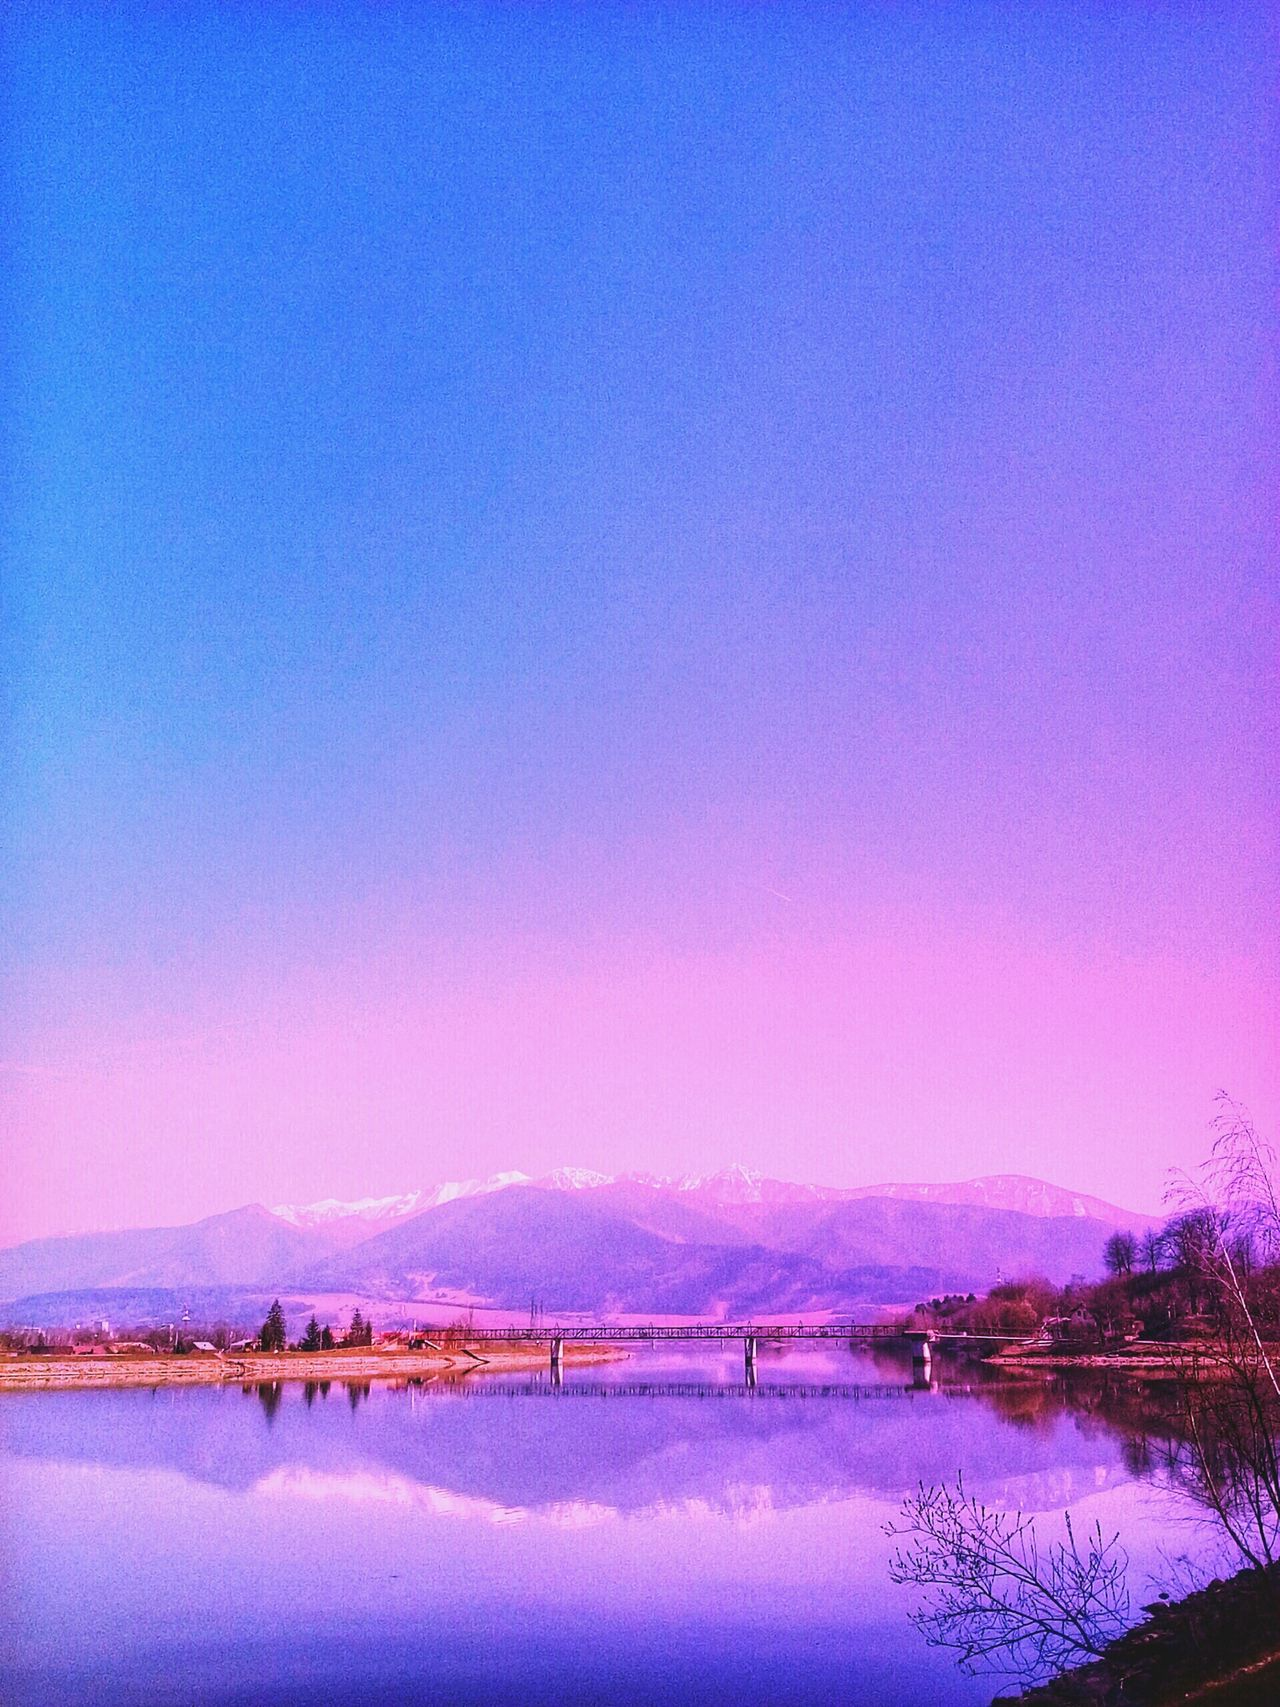 Learn & Shoot: Balancing Elements Water Reflections Mountains Bridge Color Edit Purple Shades Snow On Mountains Spring Landscape Landscape Reflecting In Mirror Mala Fatra Slovakia Landscapes With WhiteWall